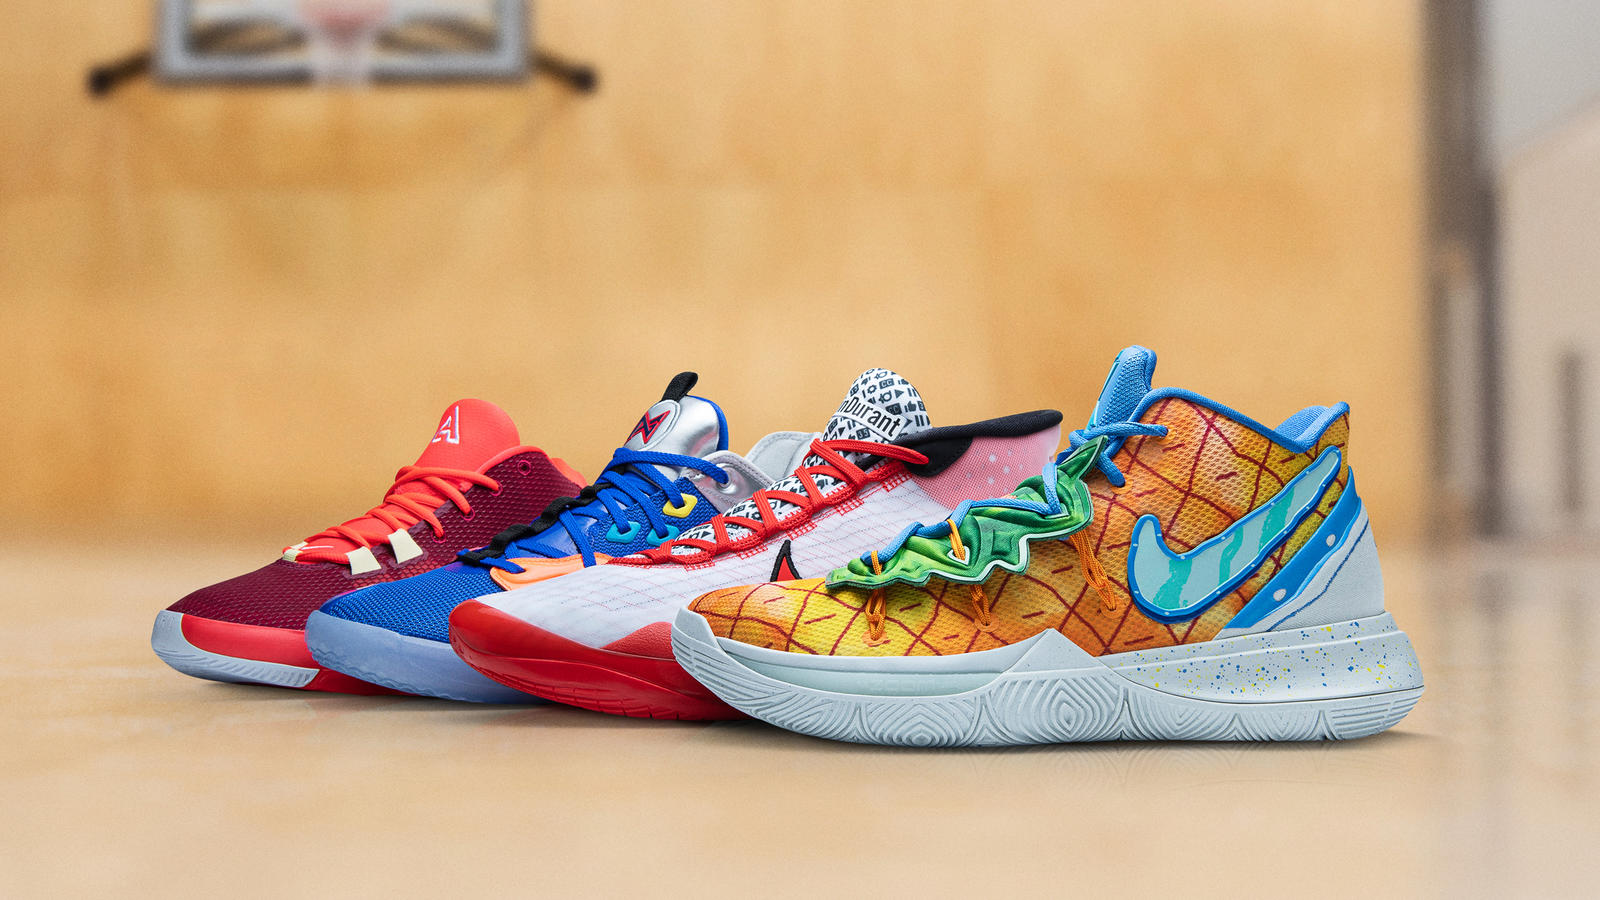 NBA Opening Week 2019-20 KYRIE 5, KD12, PG3, Air Zoom Freak 1 Official Images and Release Dates 9